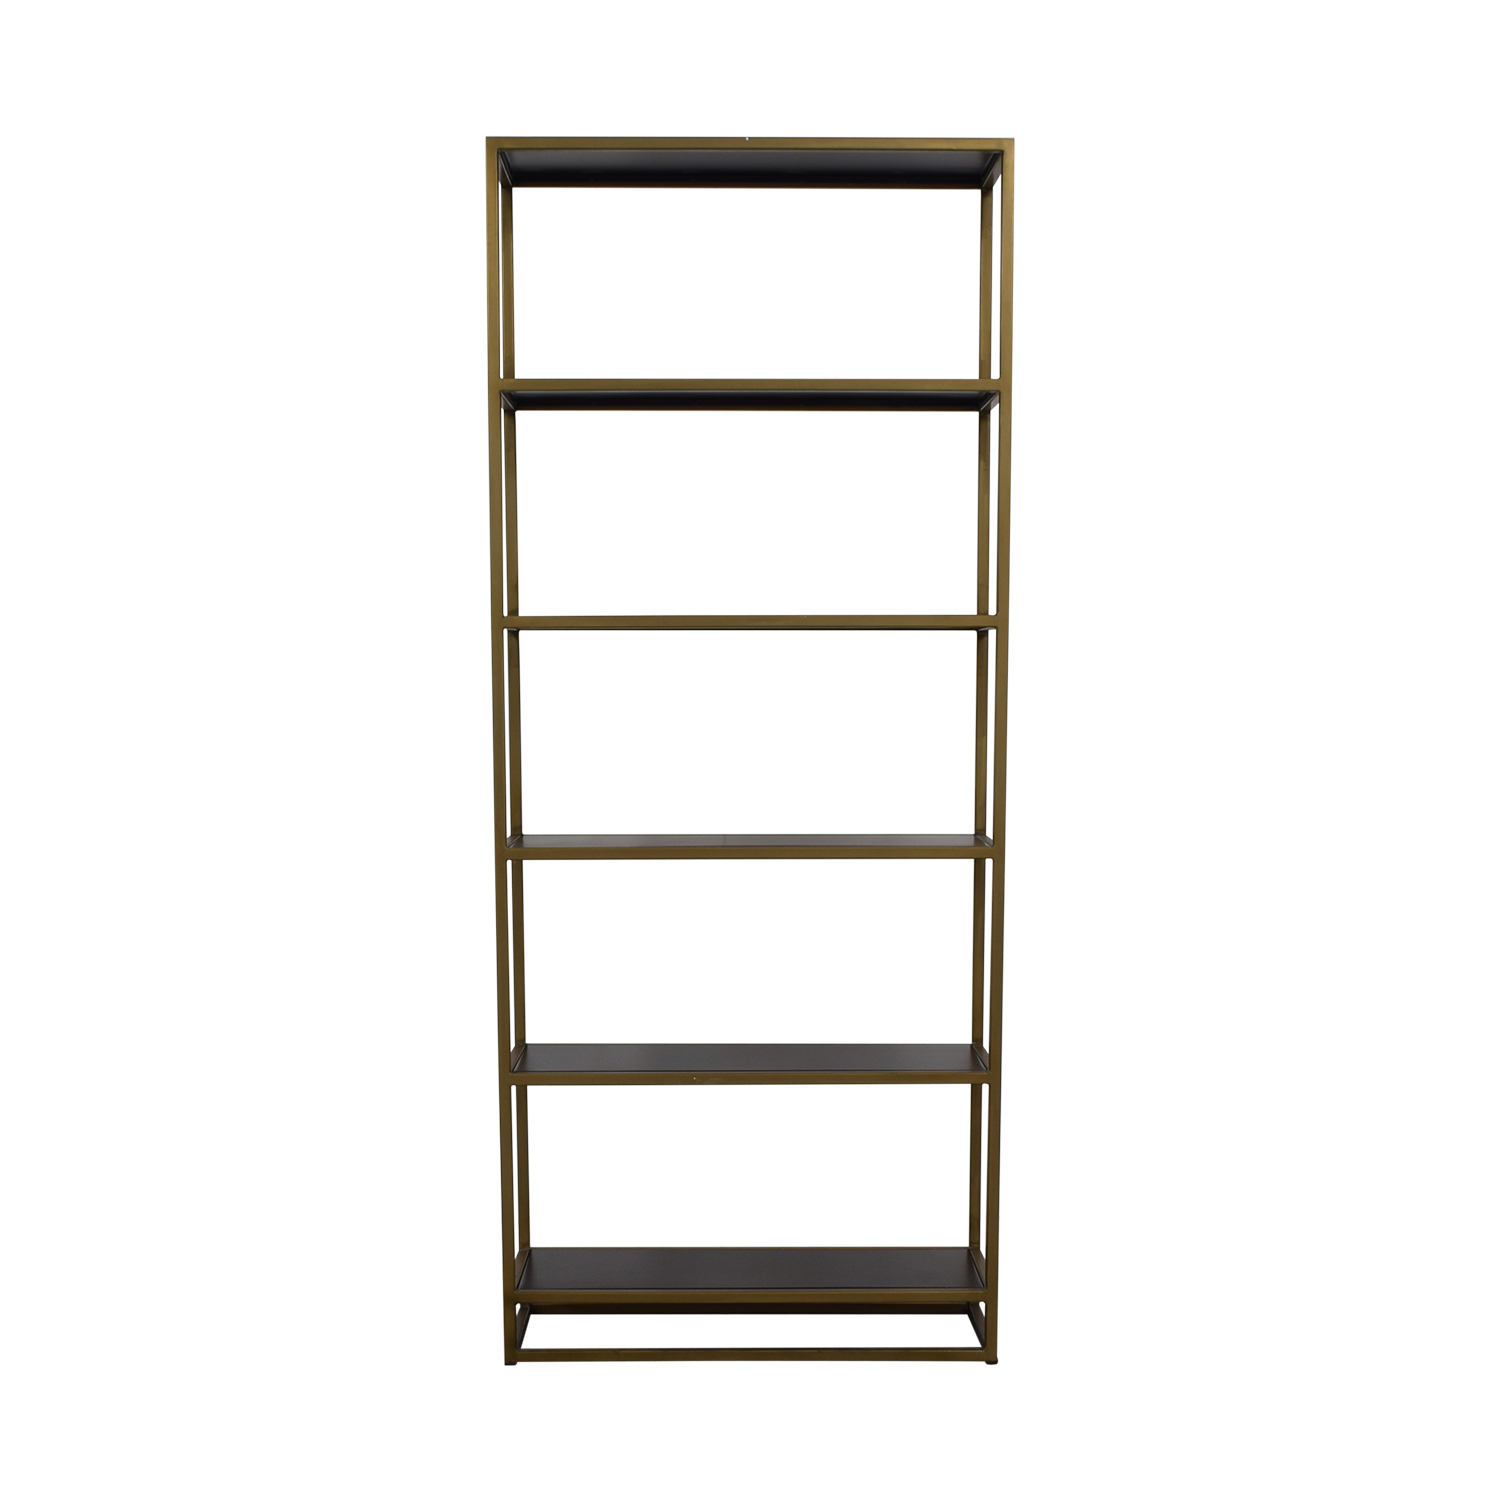 buy Crate & Barrel Brass Bookshelf Crate & Barrel